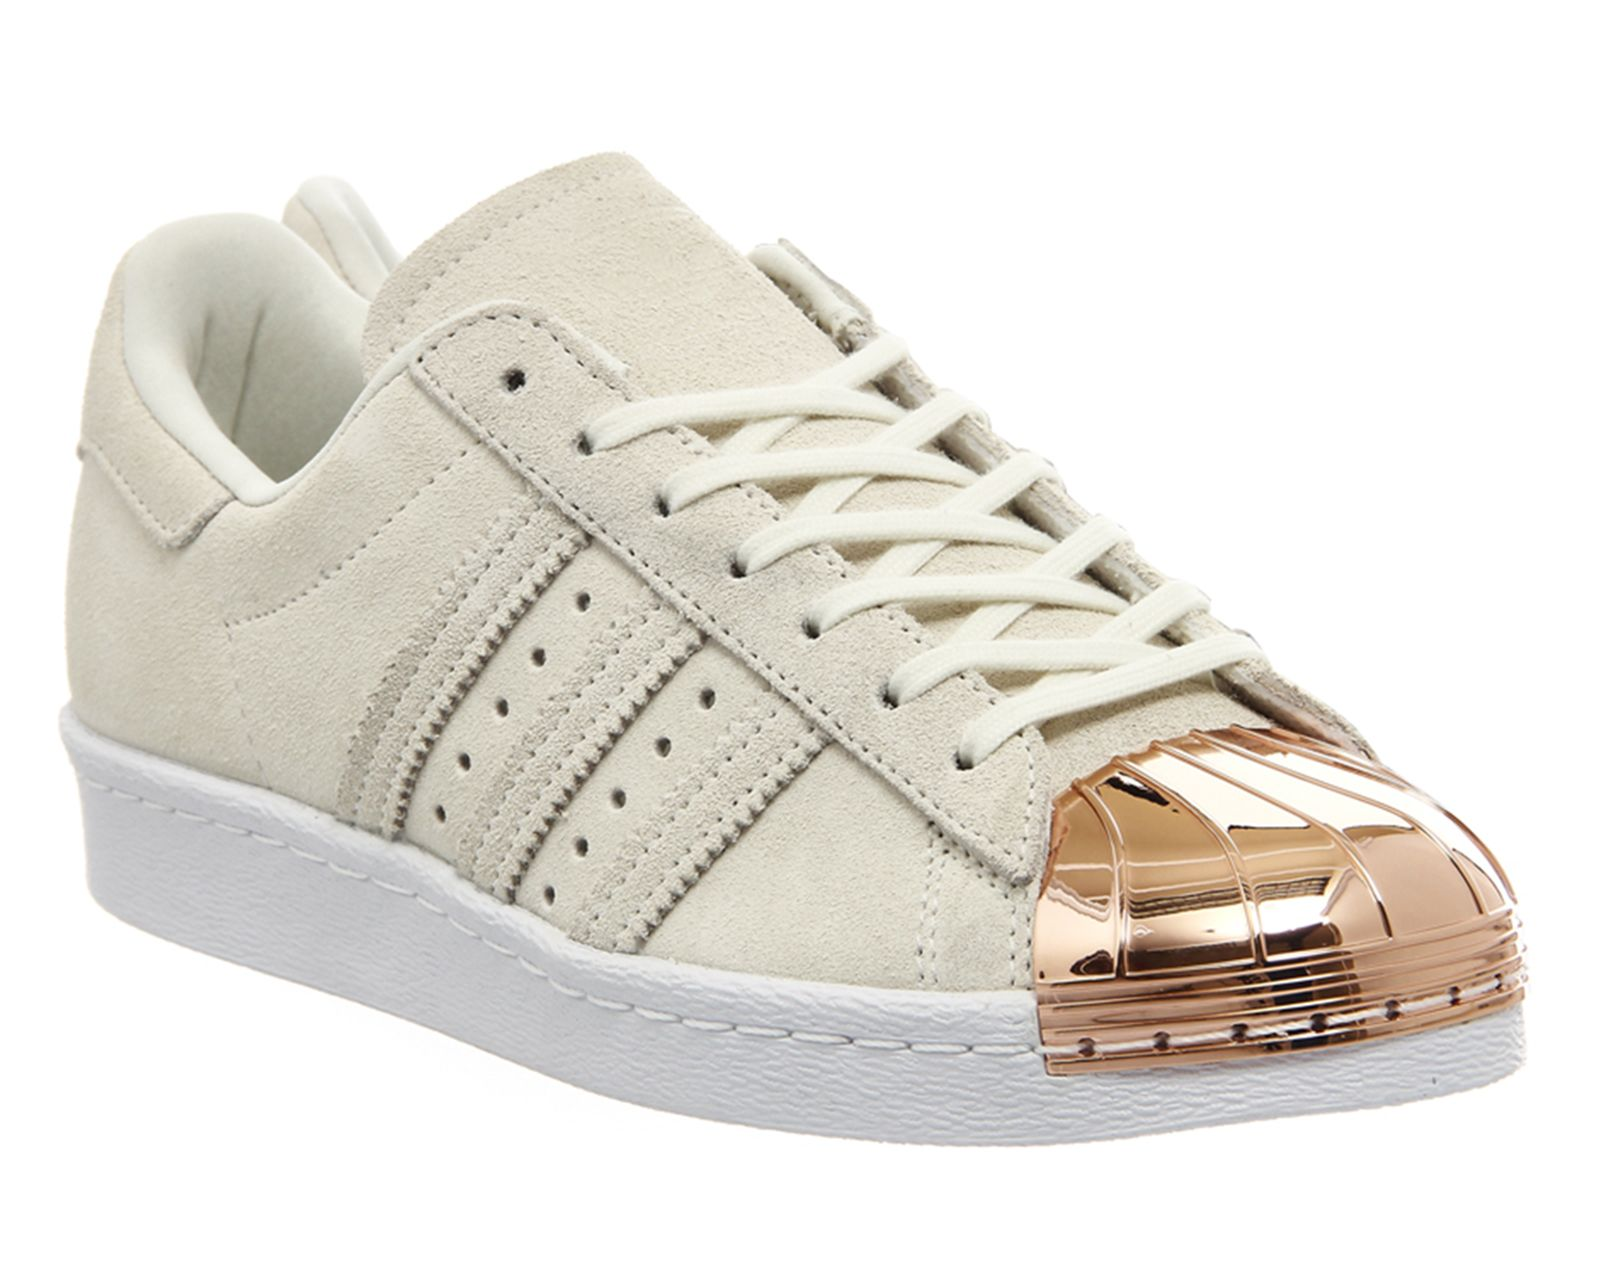 adidas superstars rose gold metallic